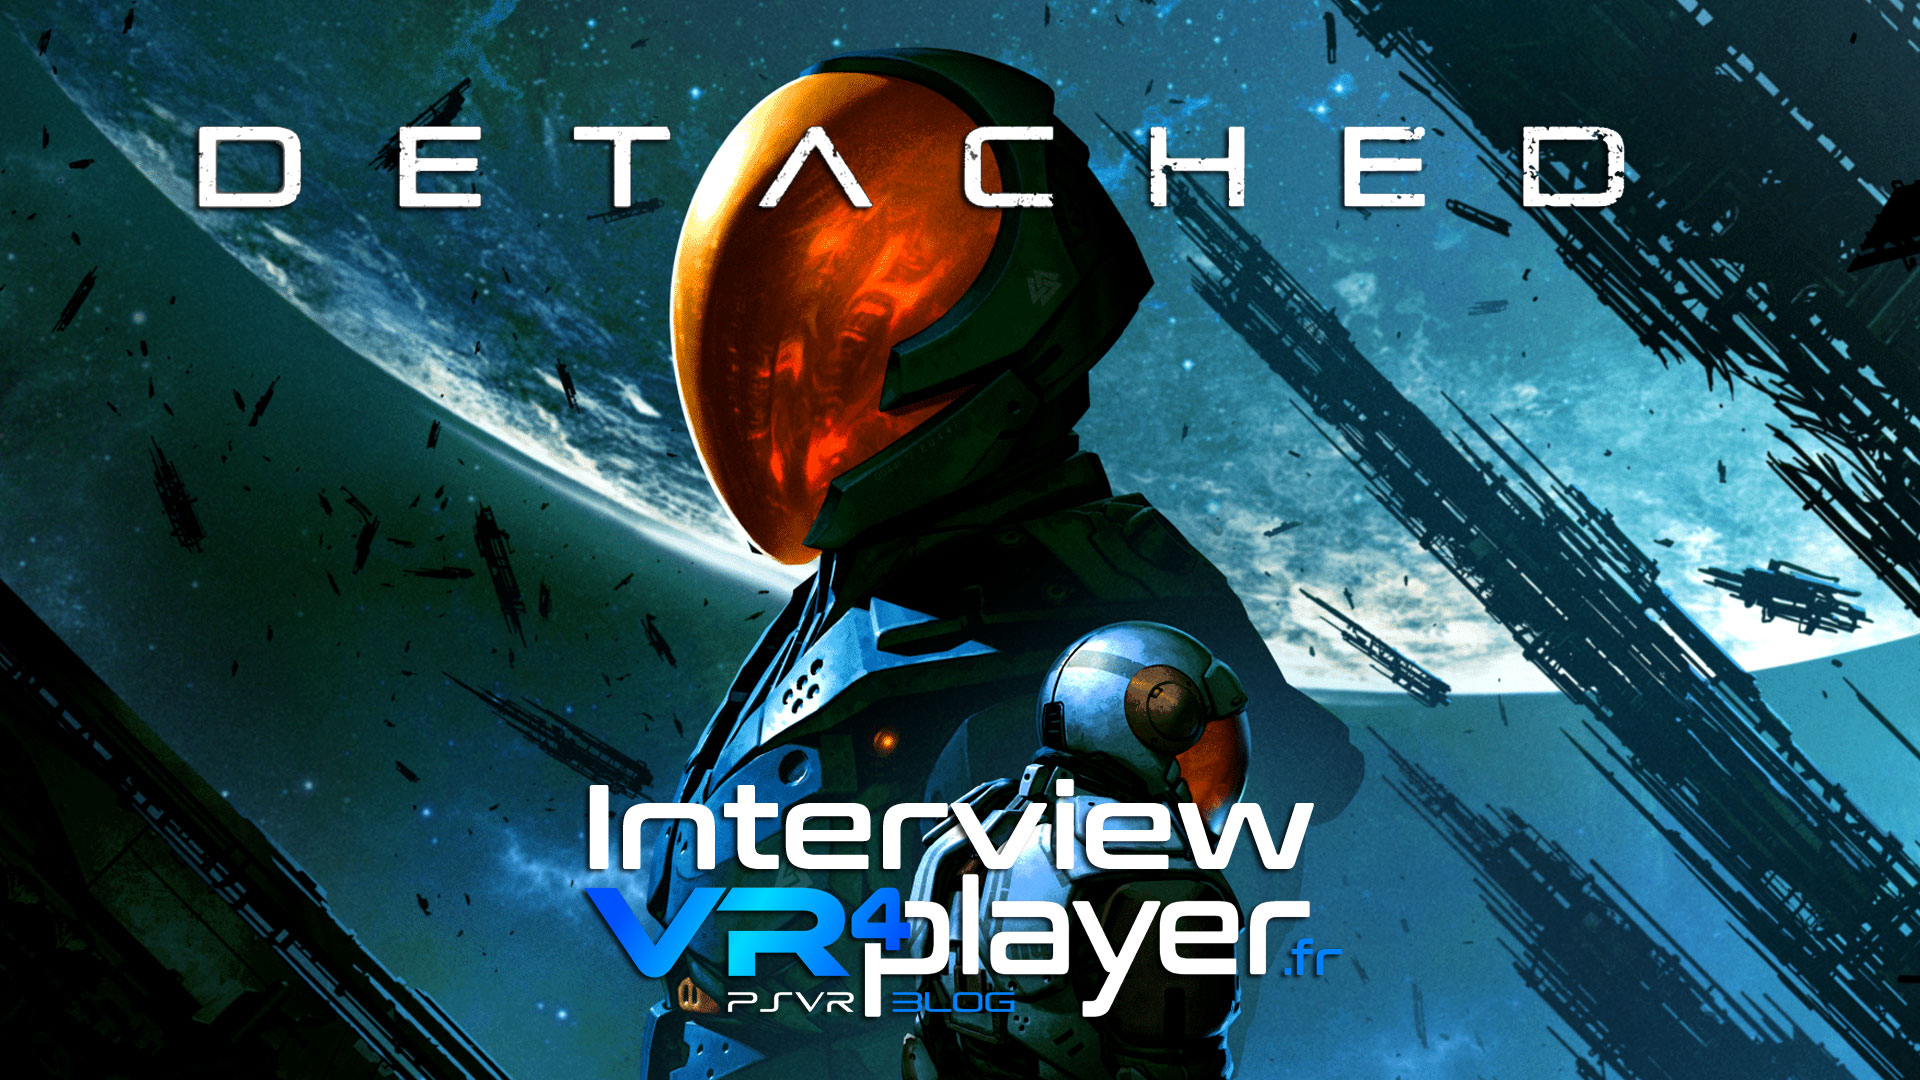 DETACHED sur PSVR, l'interview vr4player.fr